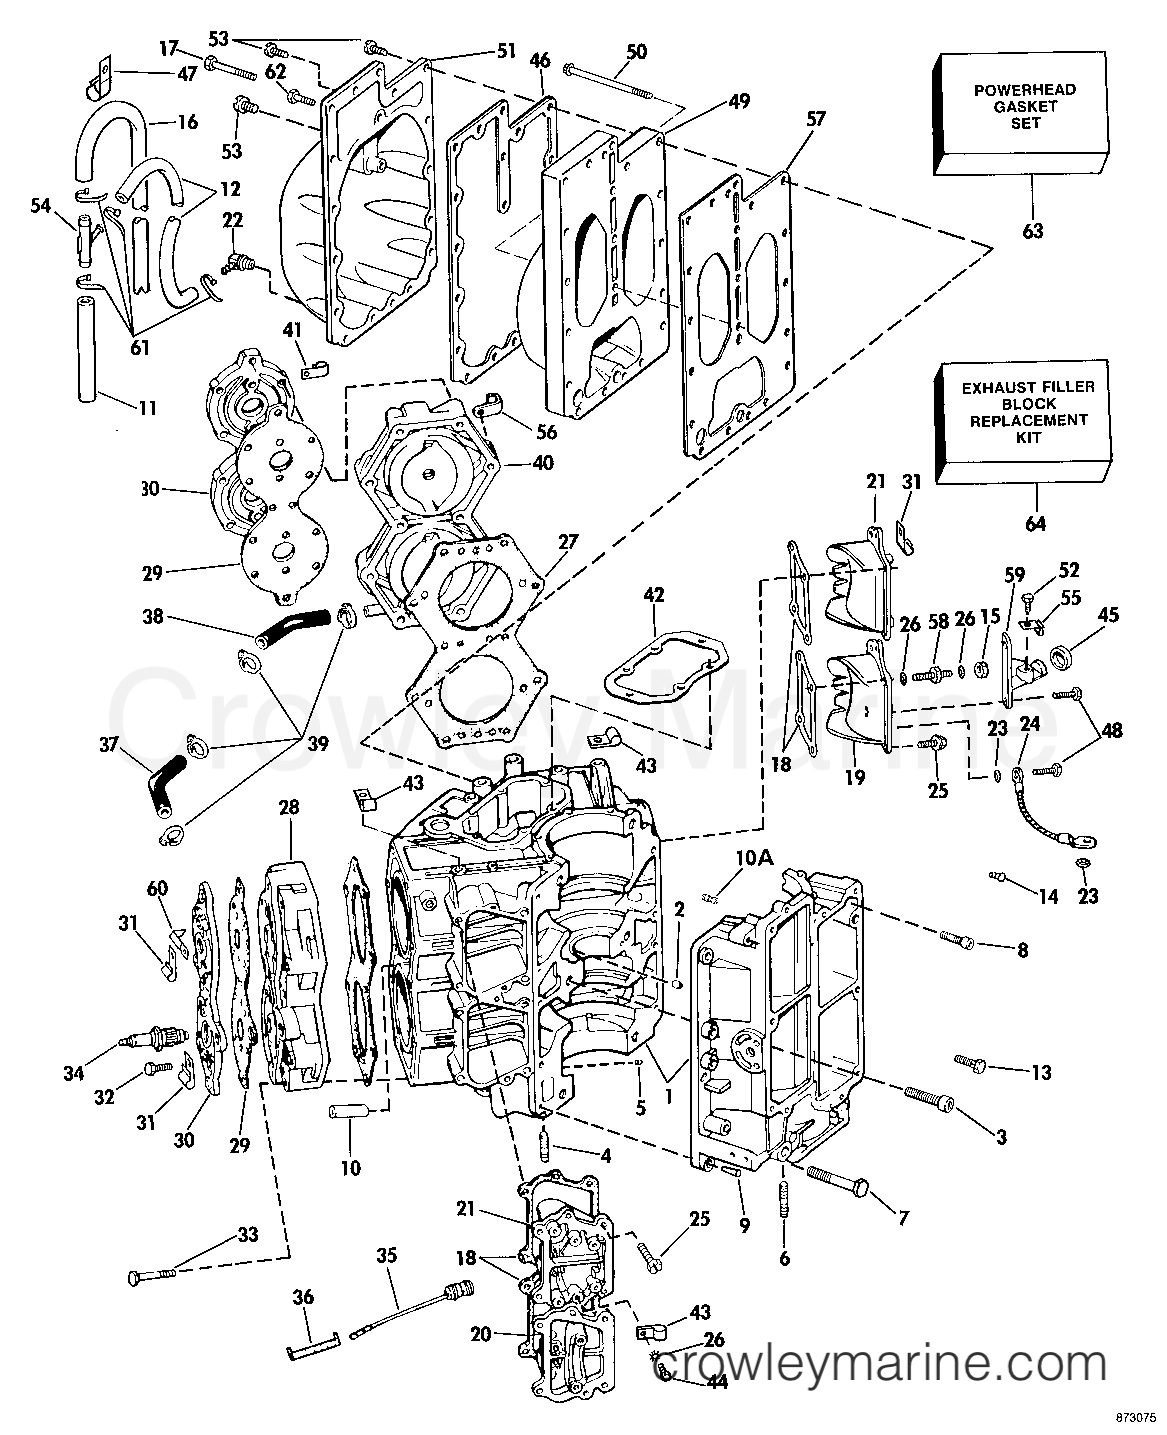 omc cobra engine wiring diagram best wiring library 1959 Red Corvette cylinder crankcase 1987 omc sea drive 1 6 mechanical 16 hd rh crowleymarine omc cobra engine